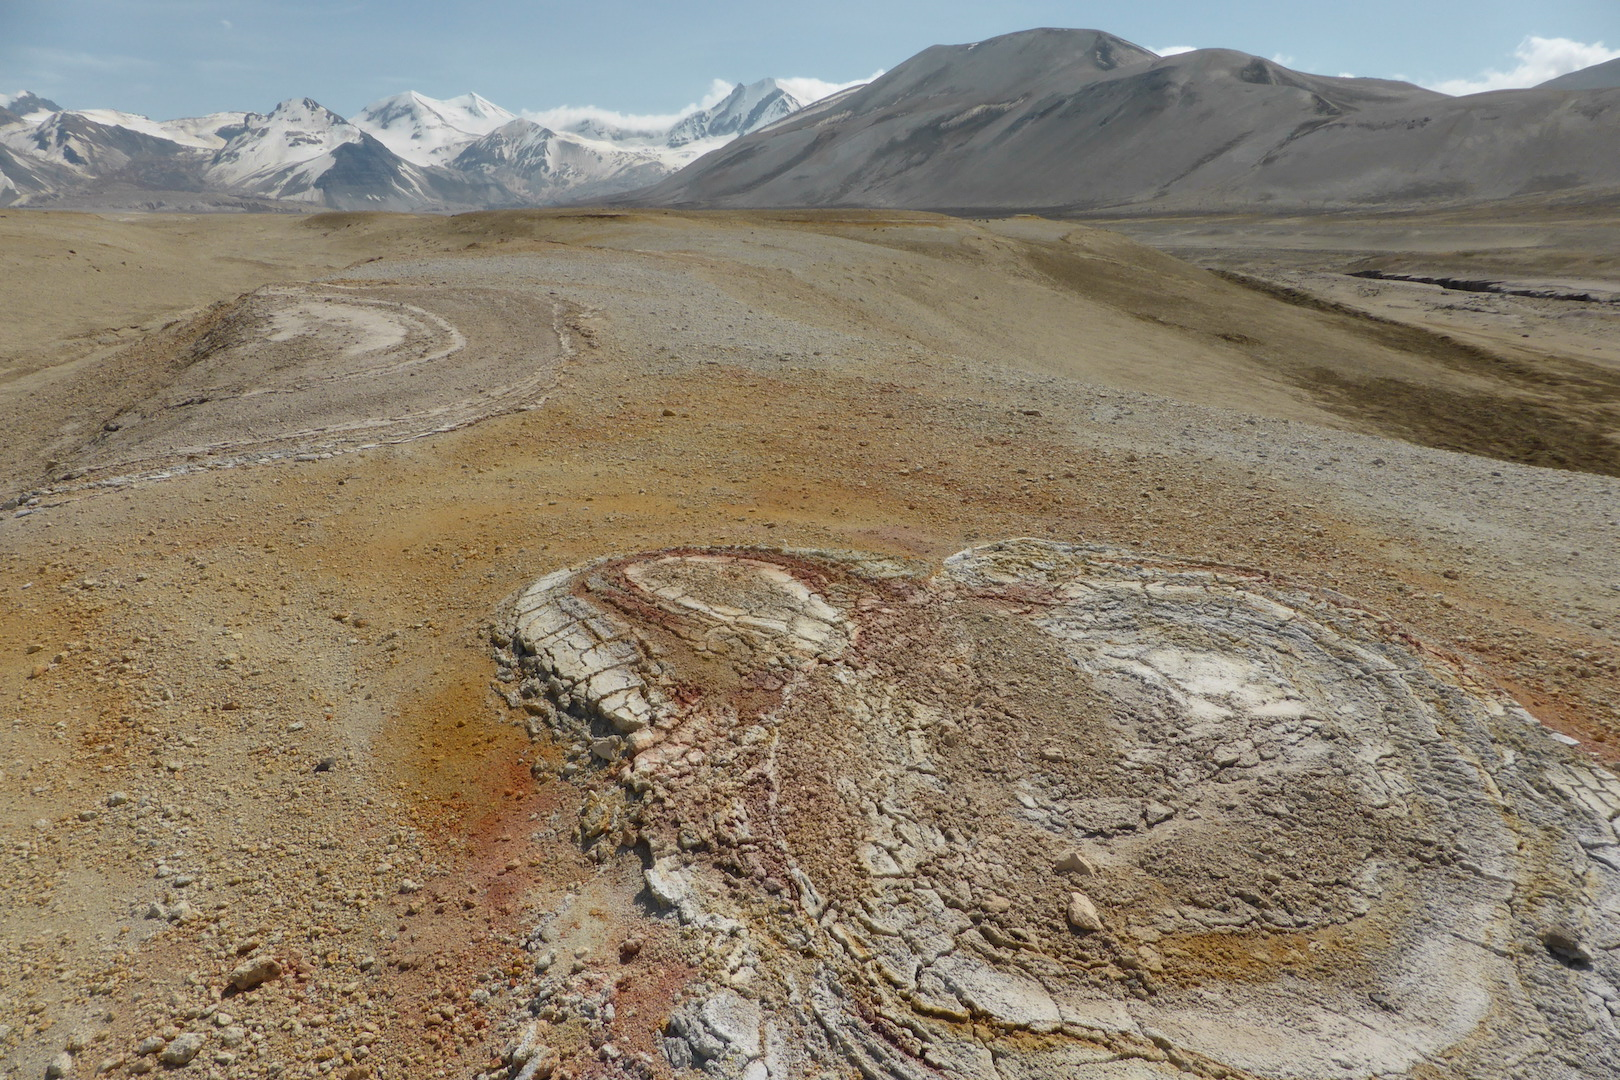 ovoid crusts of clay (lower right) lay on top of gray, orange, and brown pumice fields. snow covered mountains